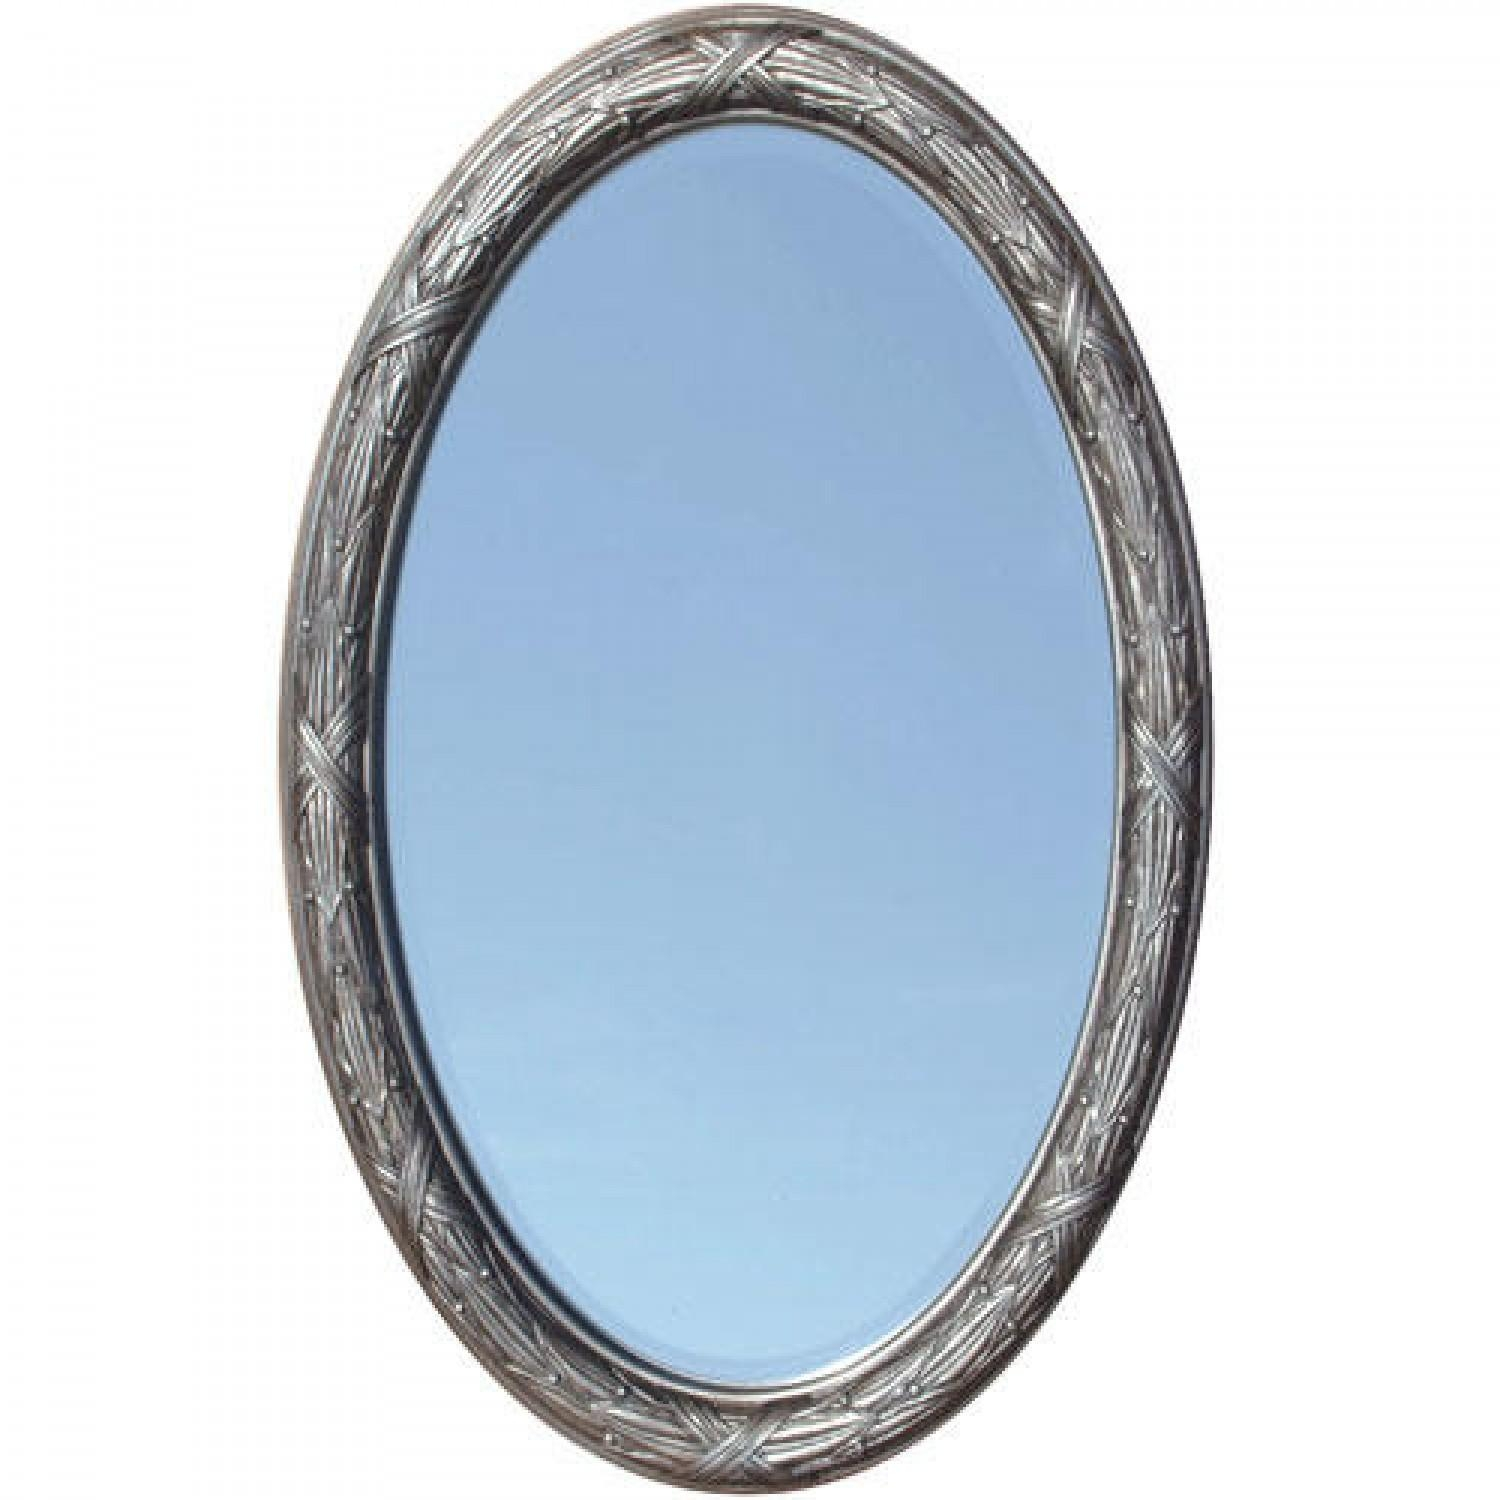 Corinthian Decorative Beveled Oval Mirror – Venetian Bronze – Bathroom With Regard To Venetian Oval Mirror (Image 8 of 20)